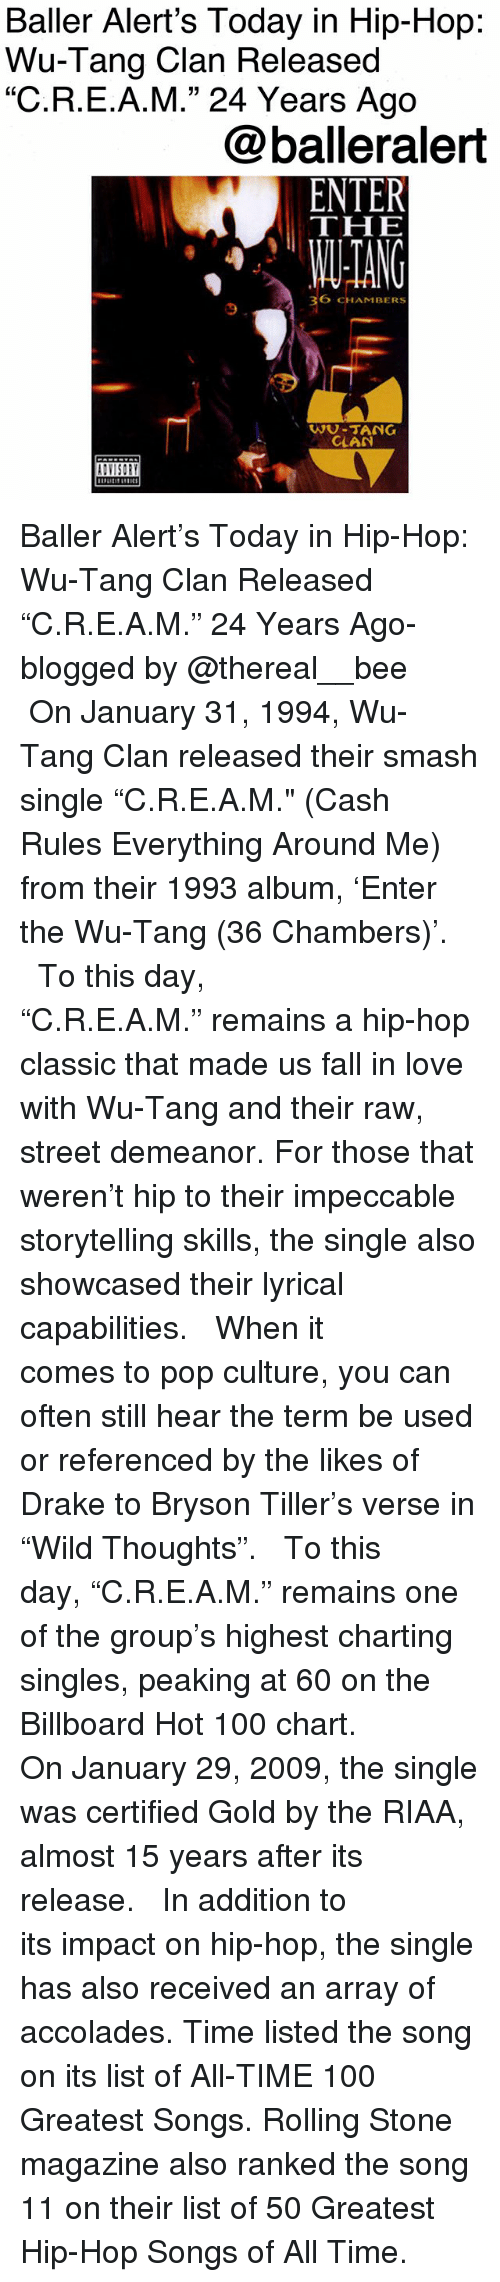 """Anaconda, Baller Alert, and Billboard: Baller Alert's Today in Hip-Hop:  Wu-Tang Clan Released  """"C.R.E.A.M."""" 24 Years Ago  @balleralert  THE  ANG  36 CHAMBERS  9  WU-TANG  CLAN Baller Alert's Today in Hip-Hop: Wu-Tang Clan Released """"C.R.E.A.M."""" 24 Years Ago-blogged by @thereal__bee ⠀⠀⠀⠀⠀⠀⠀ ⠀⠀⠀⠀ On January 31, 1994, Wu-Tang Clan released their smash single """"C.R.E.A.M."""" (Cash Rules Everything Around Me) from their 1993 album, 'Enter the Wu-Tang (36 Chambers)'. ⠀⠀⠀⠀⠀⠀⠀ ⠀⠀⠀⠀ To this day, """"C.R.E.A.M."""" remains a hip-hop classic that made us fall in love with Wu-Tang and their raw, street demeanor. For those that weren't hip to their impeccable storytelling skills, the single also showcased their lyrical capabilities. ⠀⠀⠀⠀⠀⠀⠀ ⠀⠀⠀⠀ When it comes to pop culture, you can often still hear the term be used or referenced by the likes of Drake to Bryson Tiller's verse in """"Wild Thoughts"""". ⠀⠀⠀⠀⠀⠀⠀ ⠀⠀⠀⠀ To this day, """"C.R.E.A.M."""" remains one of the group's highest charting singles, peaking at 60 on the Billboard Hot 100 chart. ⠀⠀⠀⠀⠀⠀⠀ ⠀⠀⠀⠀ On January 29, 2009, the single was certified Gold by the RIAA, almost 15 years after its release. ⠀⠀⠀⠀⠀⠀⠀ ⠀⠀⠀⠀ In addition to its impact on hip-hop, the single has also received an array of accolades. Time listed the song on its list of All-TIME 100 Greatest Songs. Rolling Stone magazine also ranked the song 11 on their list of 50 Greatest Hip-Hop Songs of All Time."""